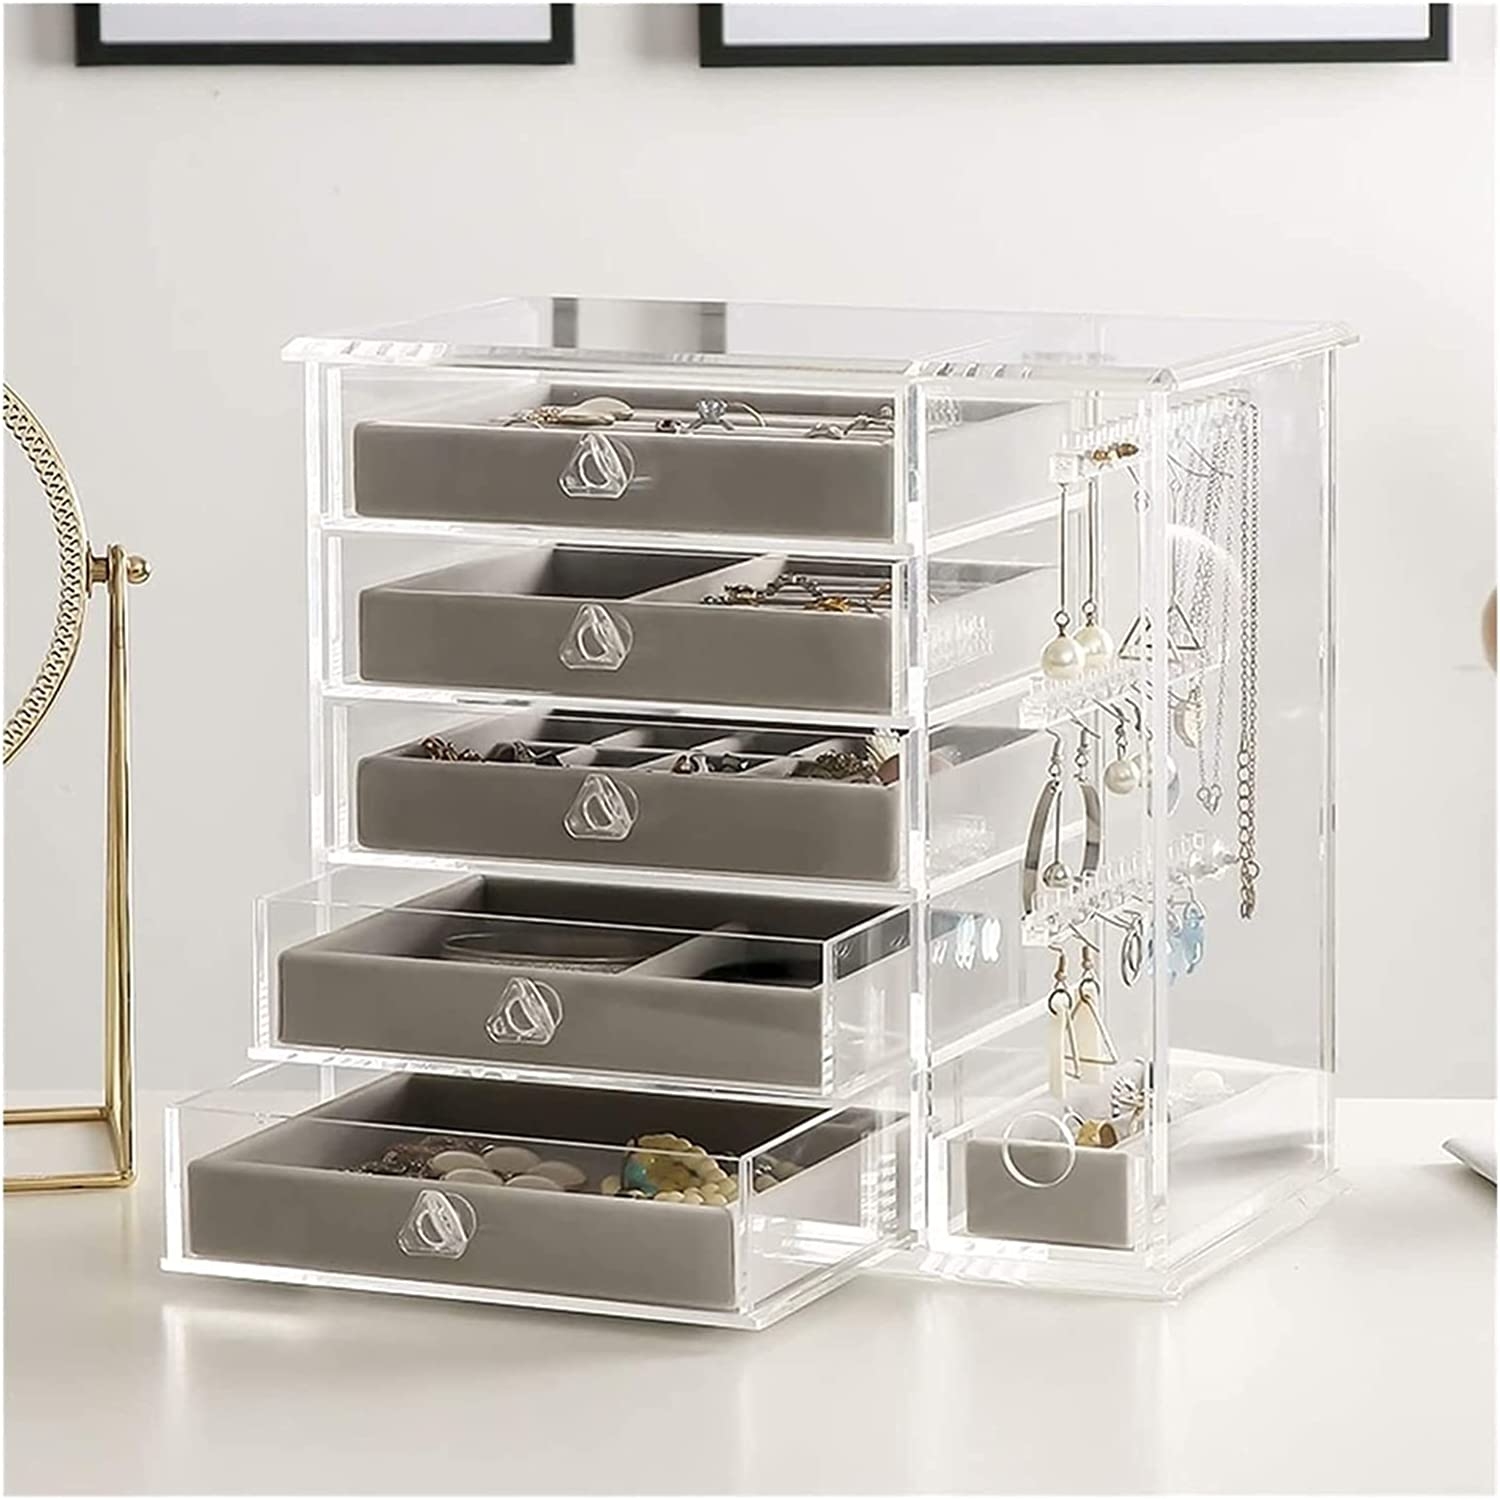 Exquisite Makeup Transparent Cheap mail order specialty store Acrylic Clea Organizer Box Jewelry latest